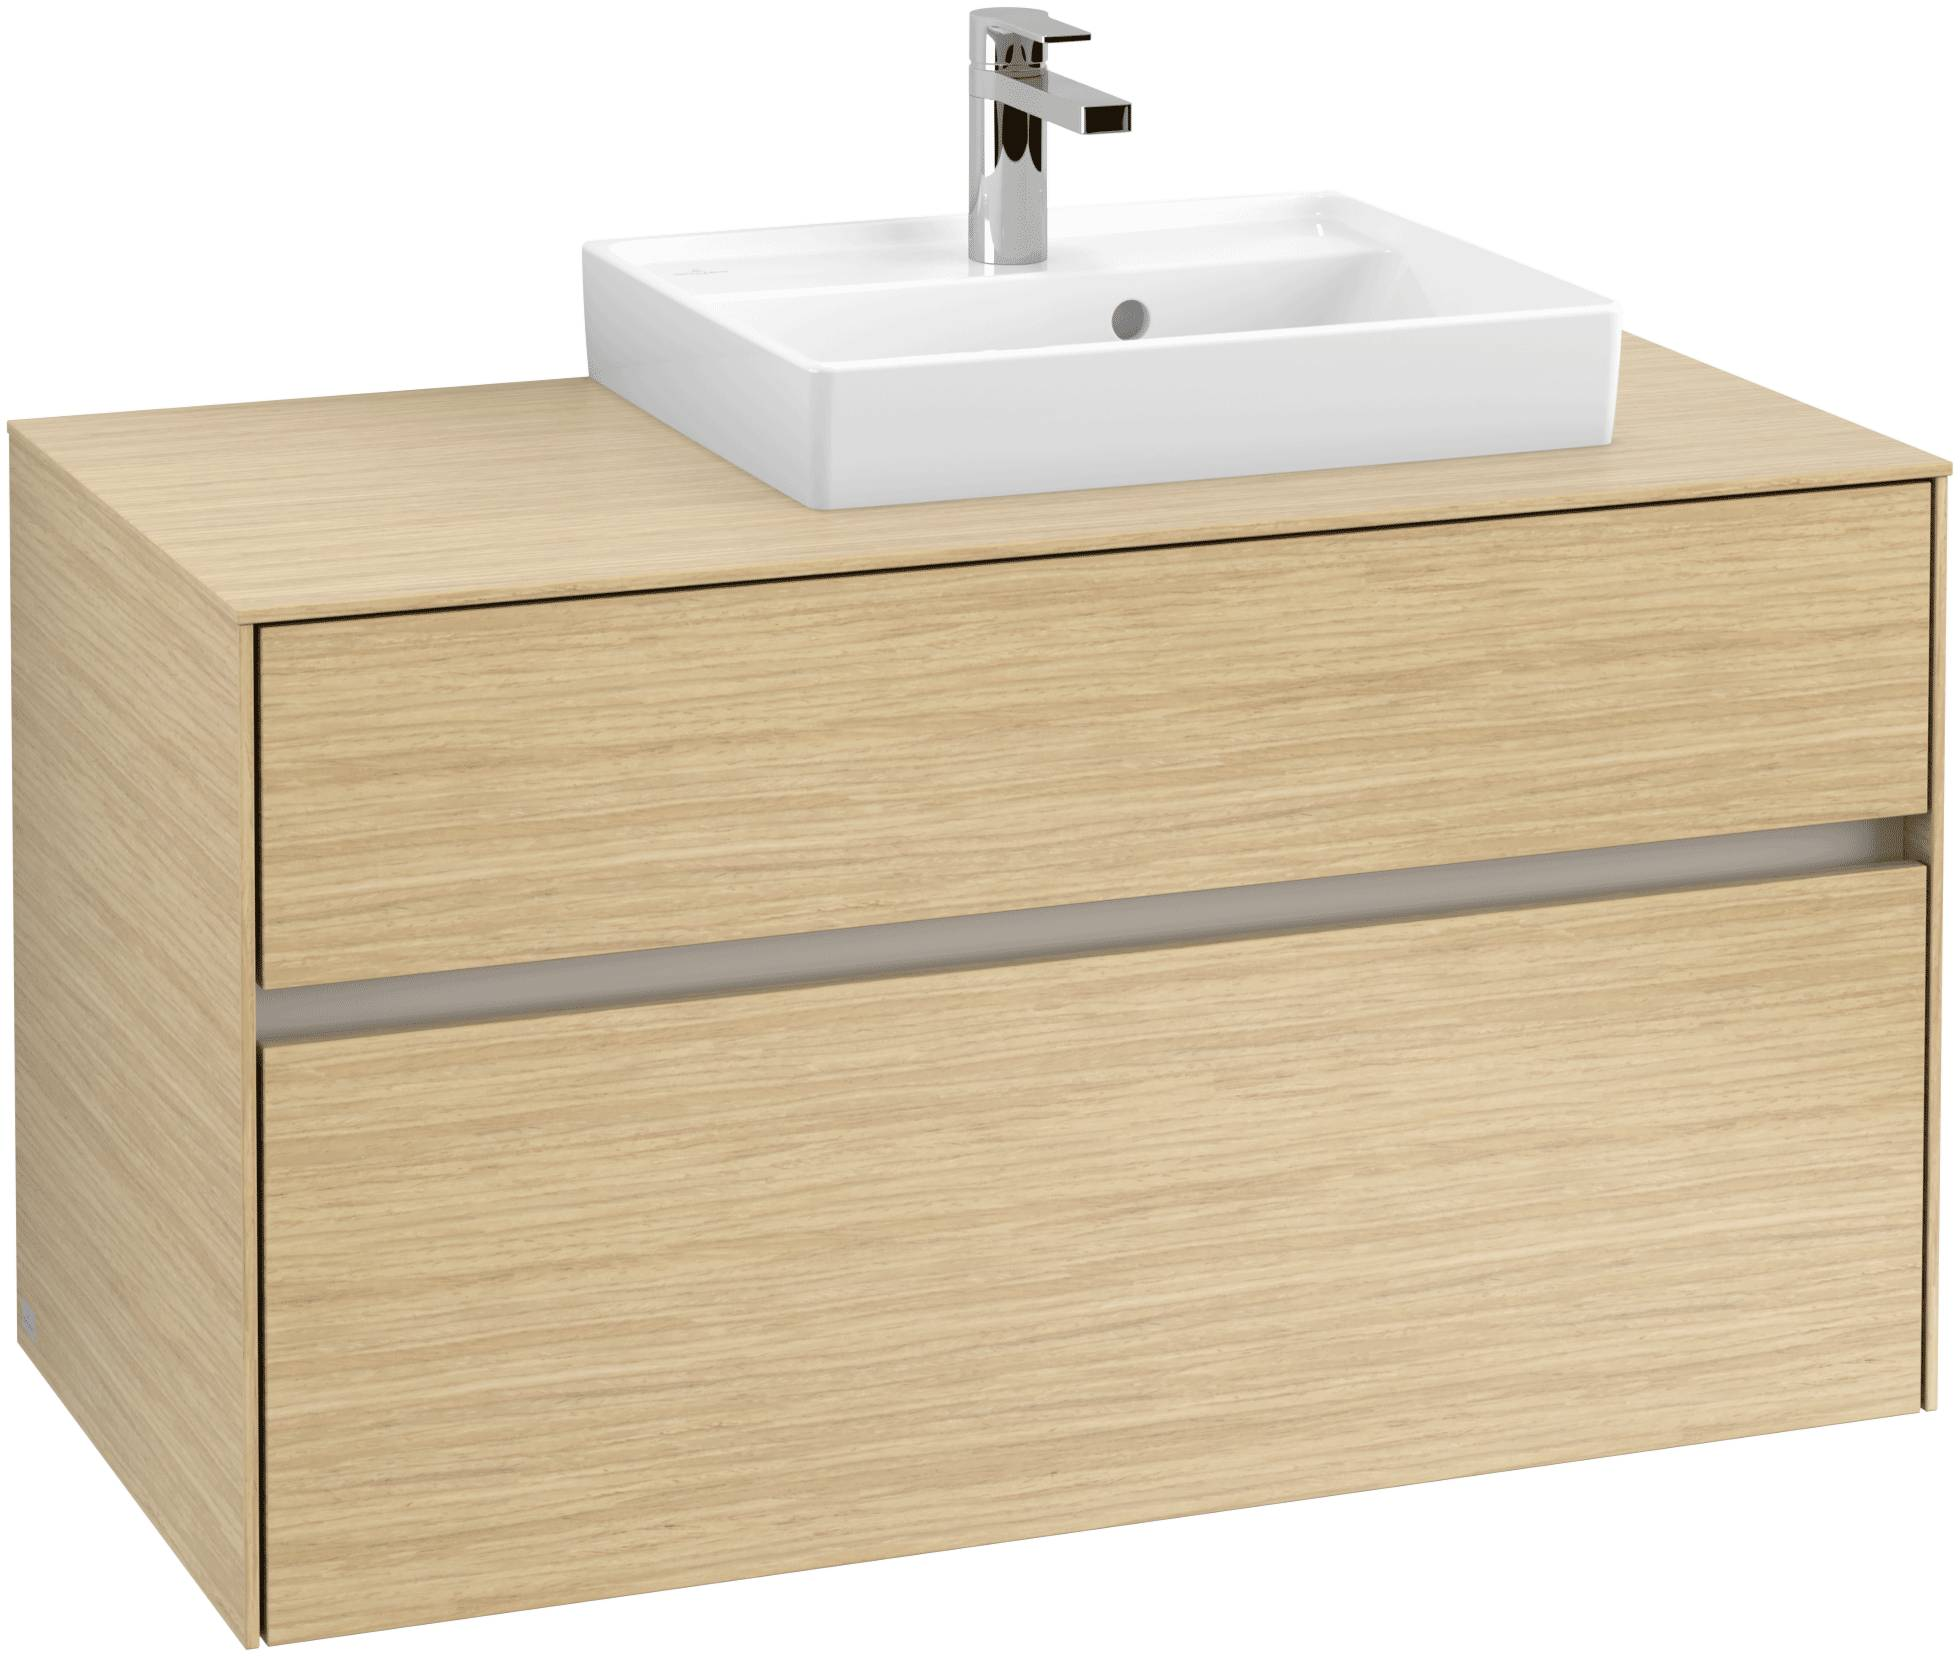 Villeroy & Boch Villeroy & Boch Collaro - Meuble sous lavabo with 2 drawers & 1 cut-out right 1000 x 548 x 500mm chêne nordique